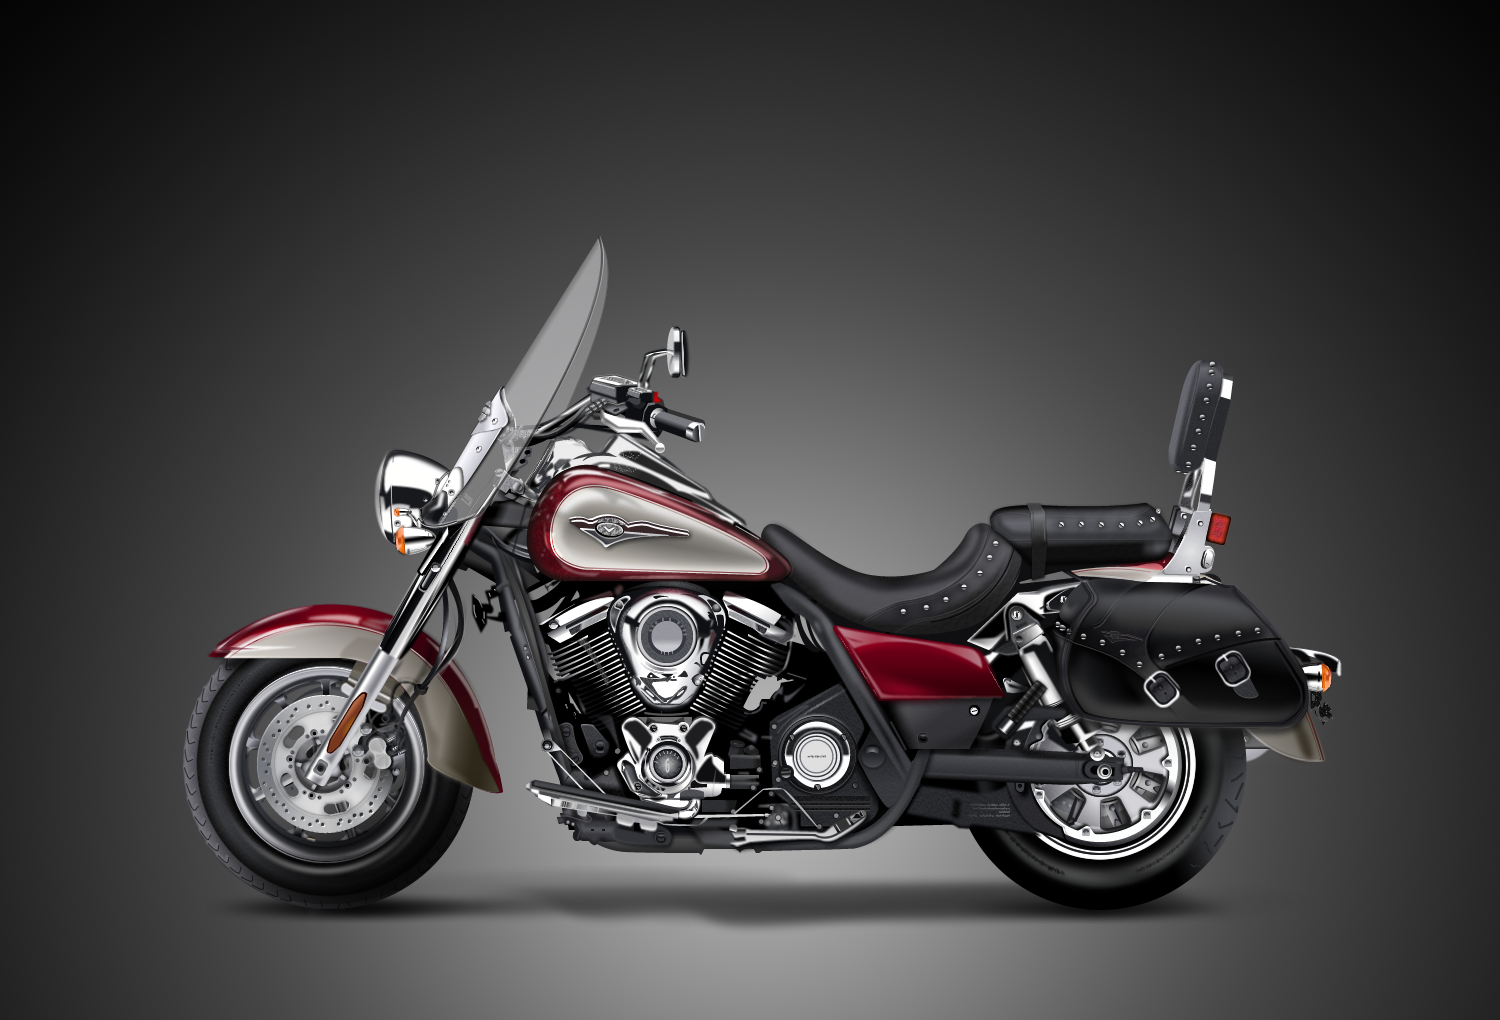 2010 kawasaki vulcan 1700 classic lt pics specs and. Black Bedroom Furniture Sets. Home Design Ideas